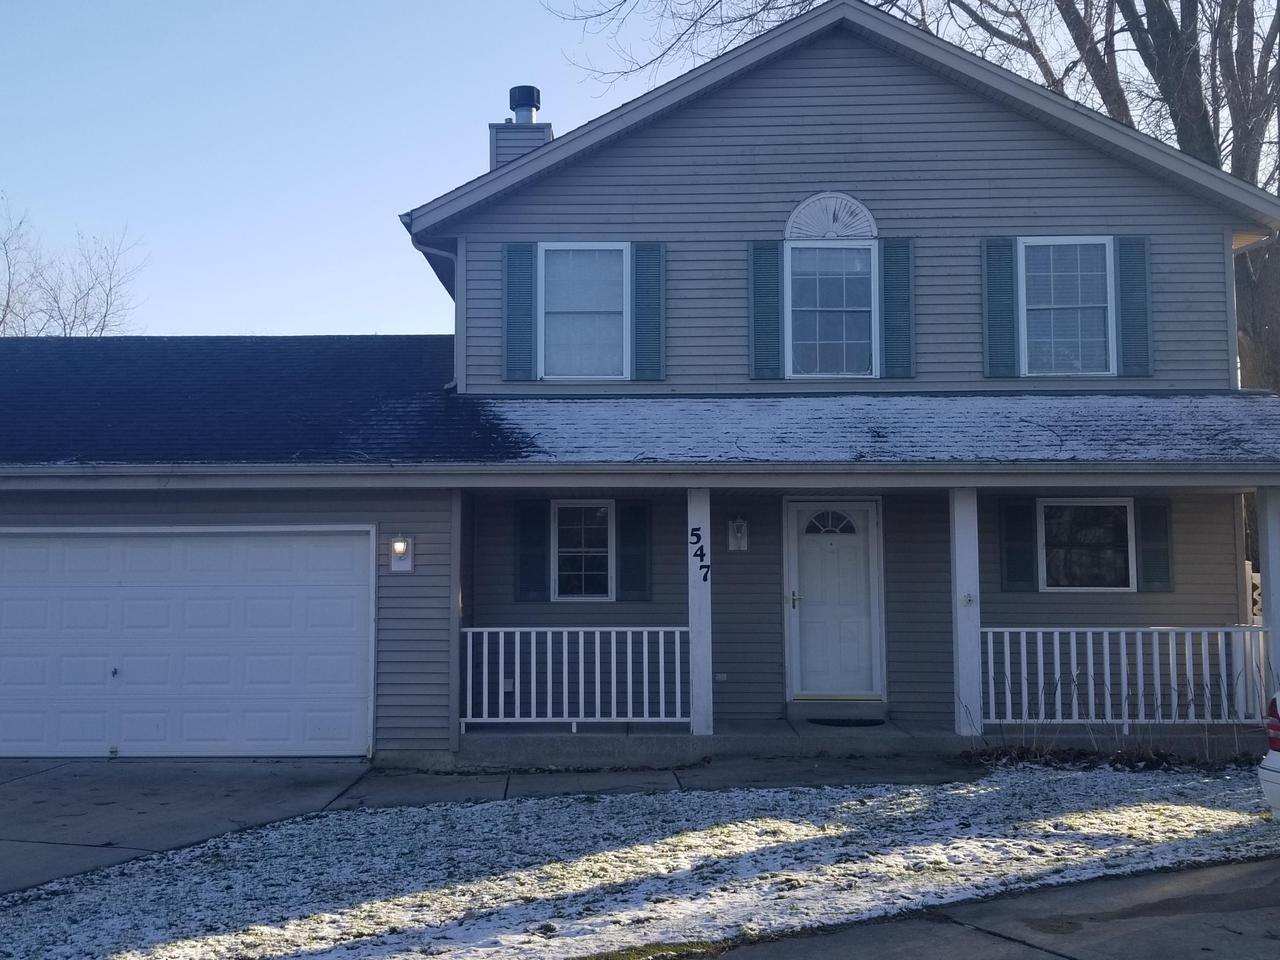 MOTIVATED SELLER. 3 bedroom, one and a half bath two story side by side condo in great area close to schools, shopping and restaurants. No condo fees, large master with walk-in closet, lots of storage space, gas fireplace, first floor laundry room. Private basement that is ready to be finished.  Large fenced in yard with private patio, two car attached garage.  3 minutes to the freeway and only 35 minutes from downtown Milwaukee.